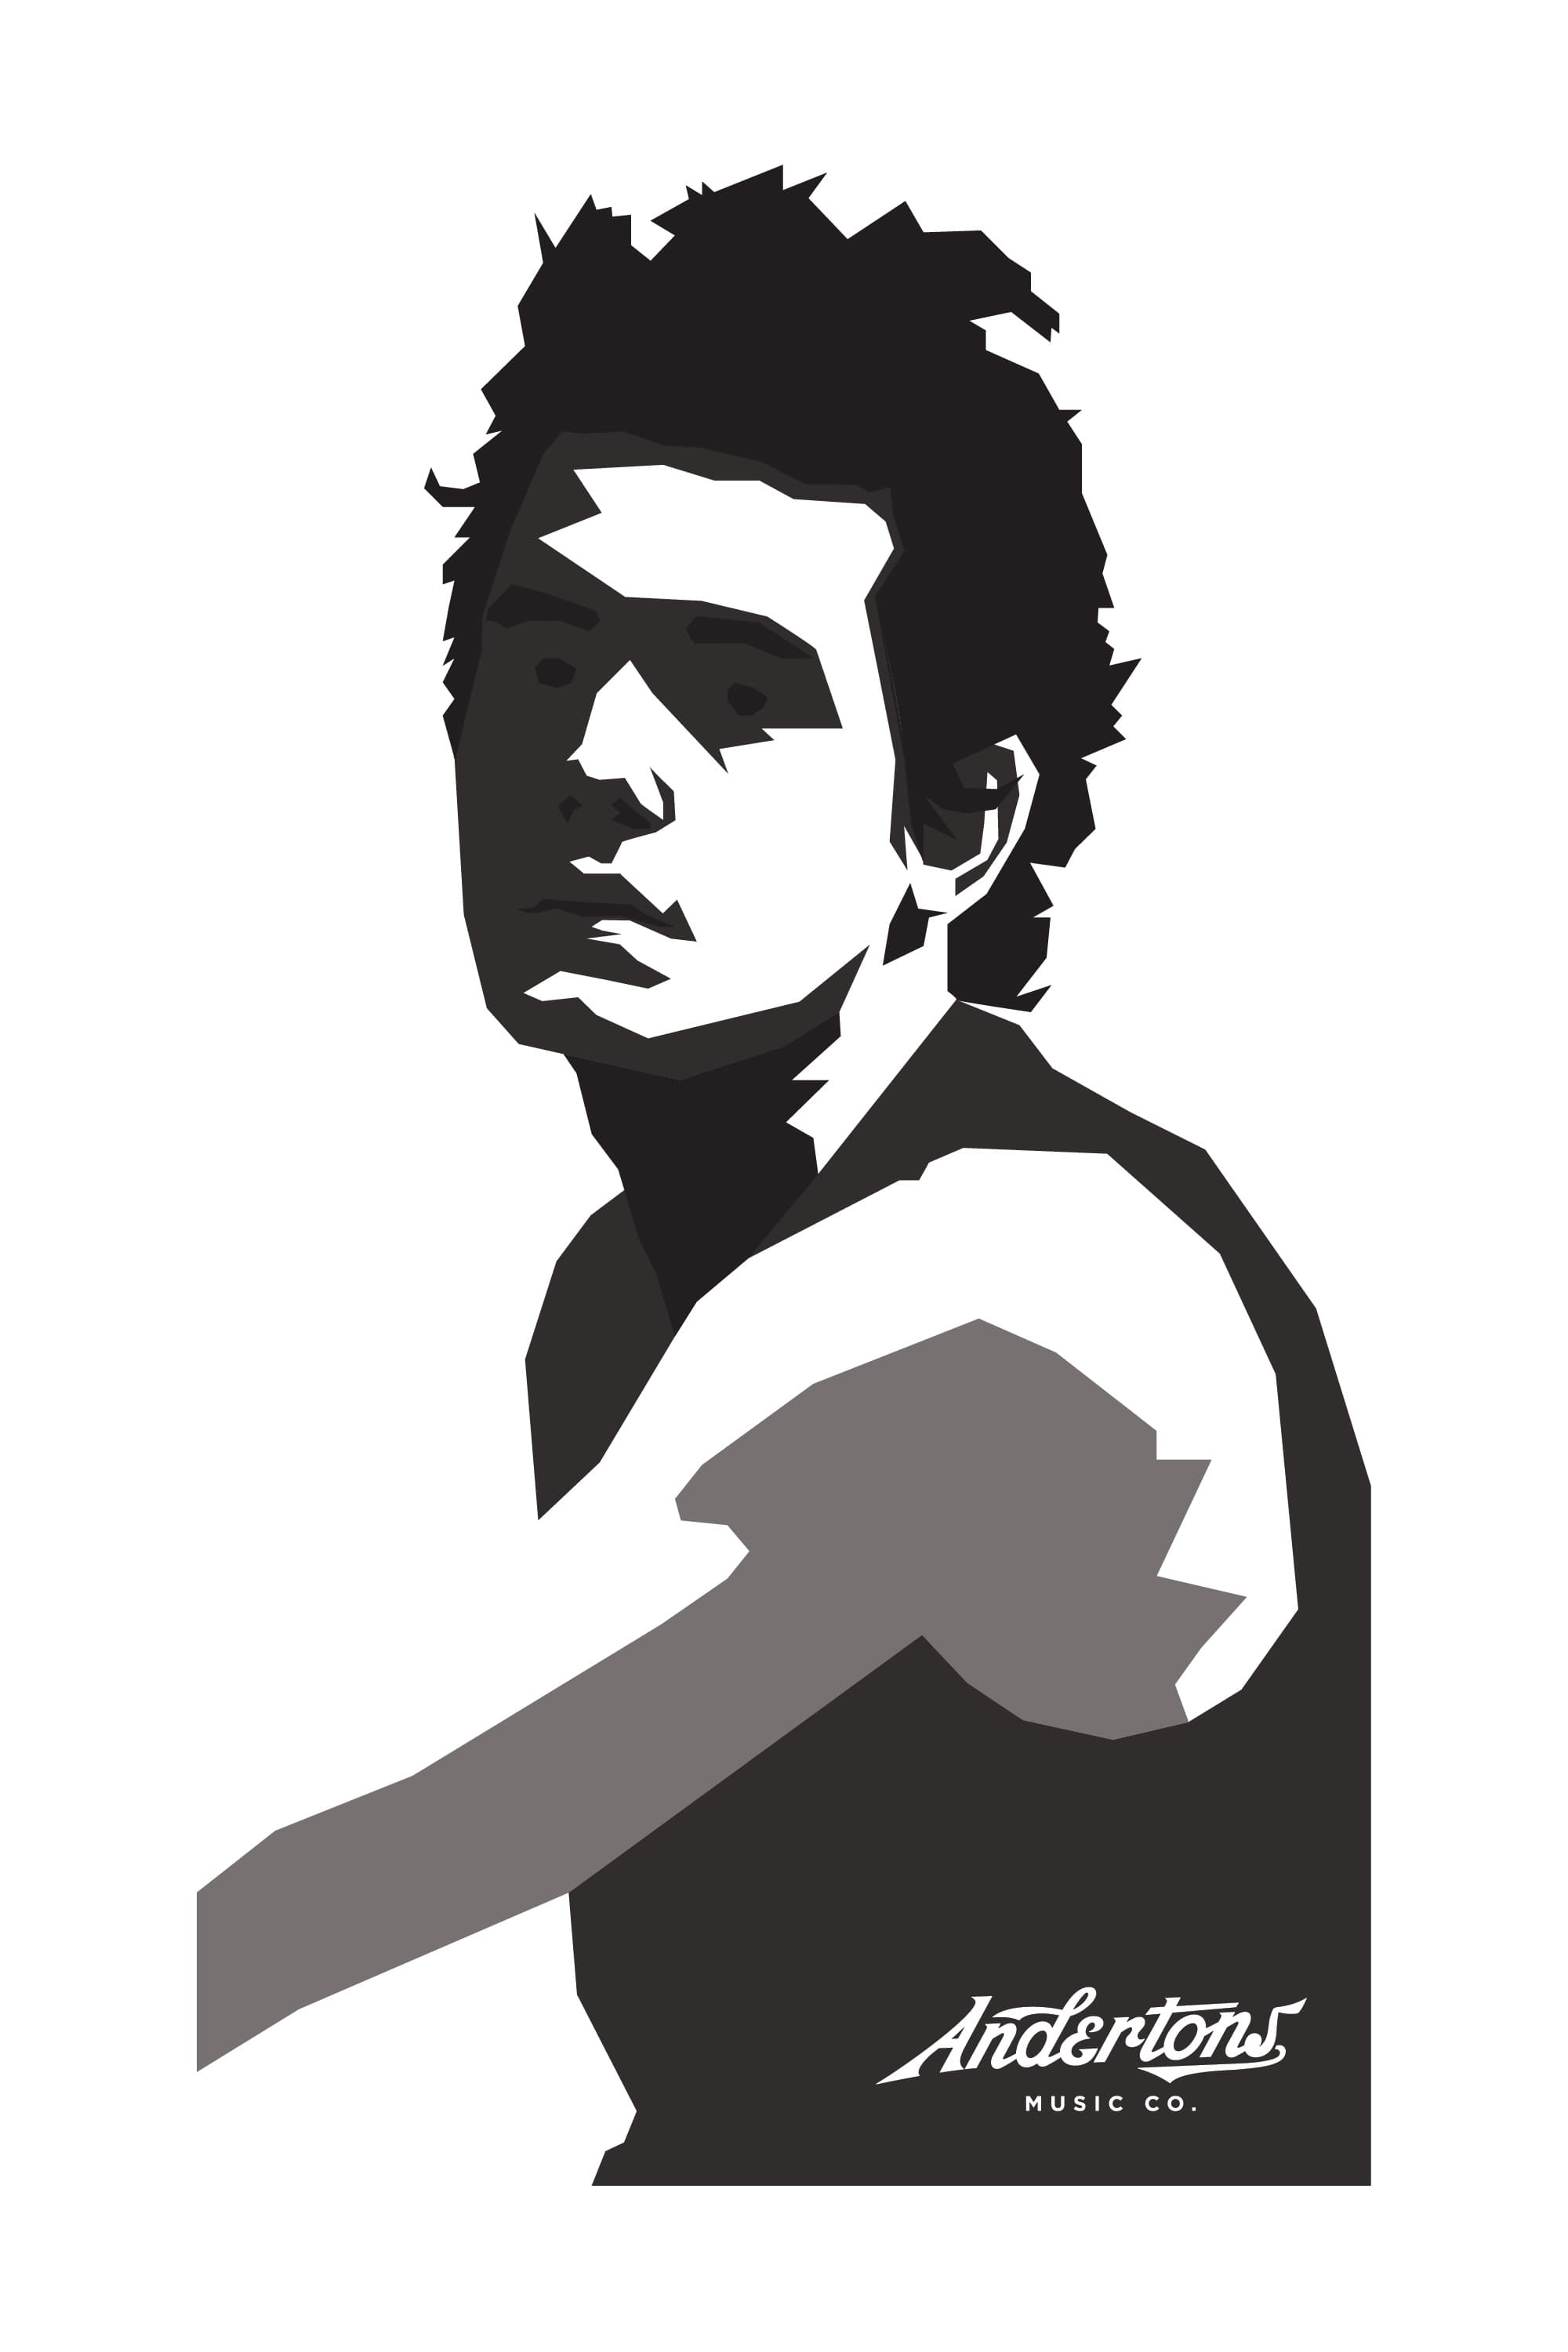 Andertons Music Co: Infographics & Illustrations - John Mayer Illustration